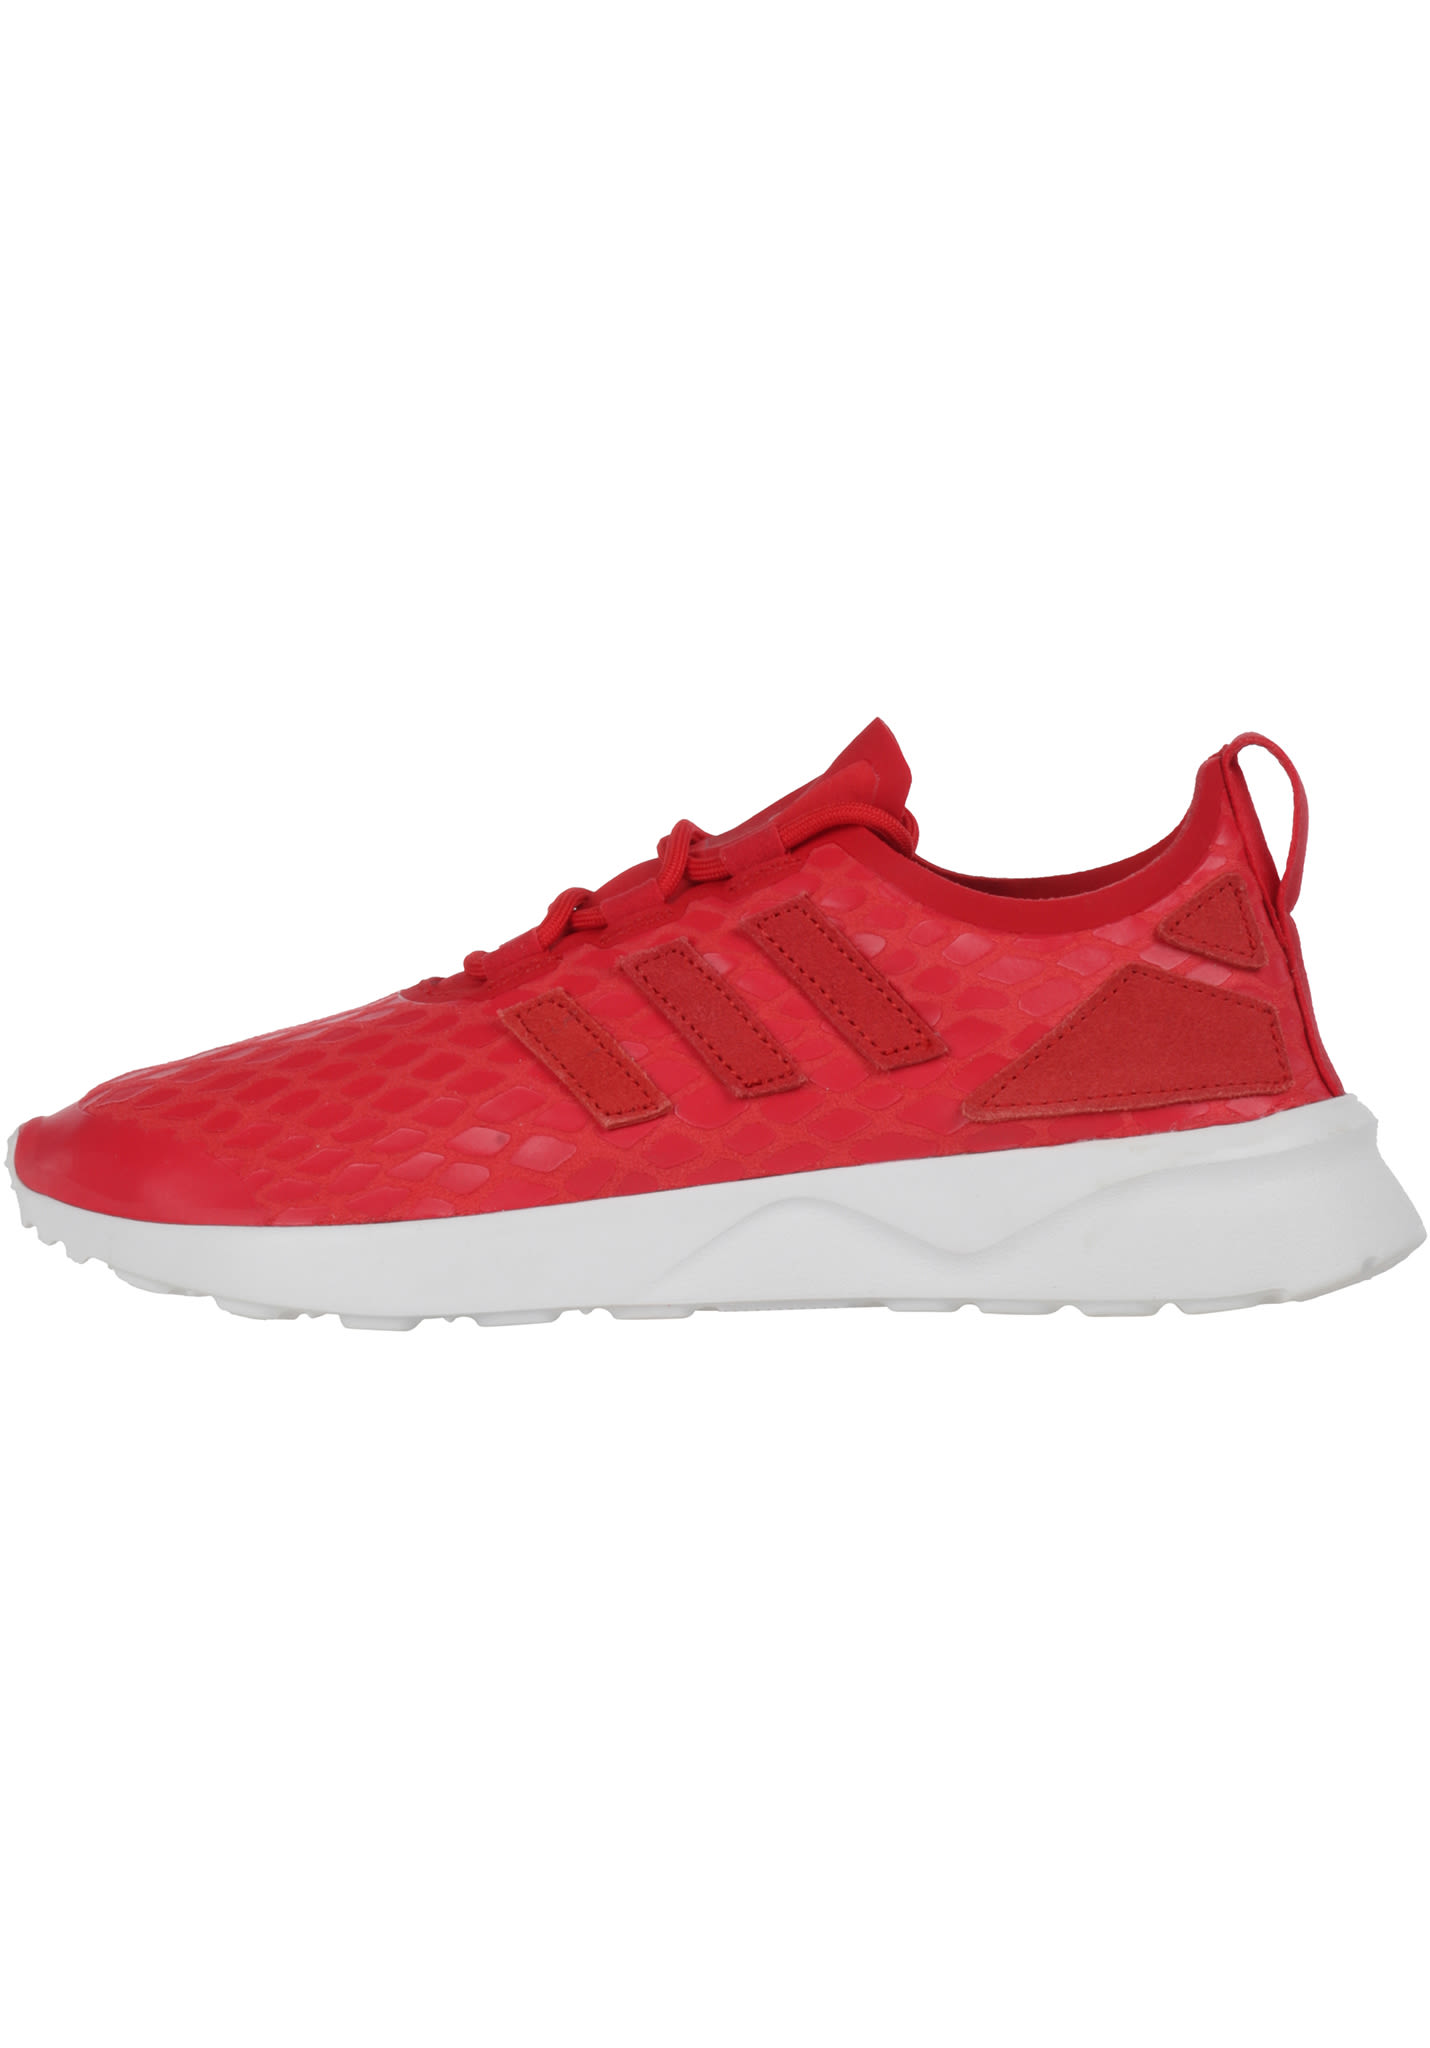 adidas zx rosse e nere